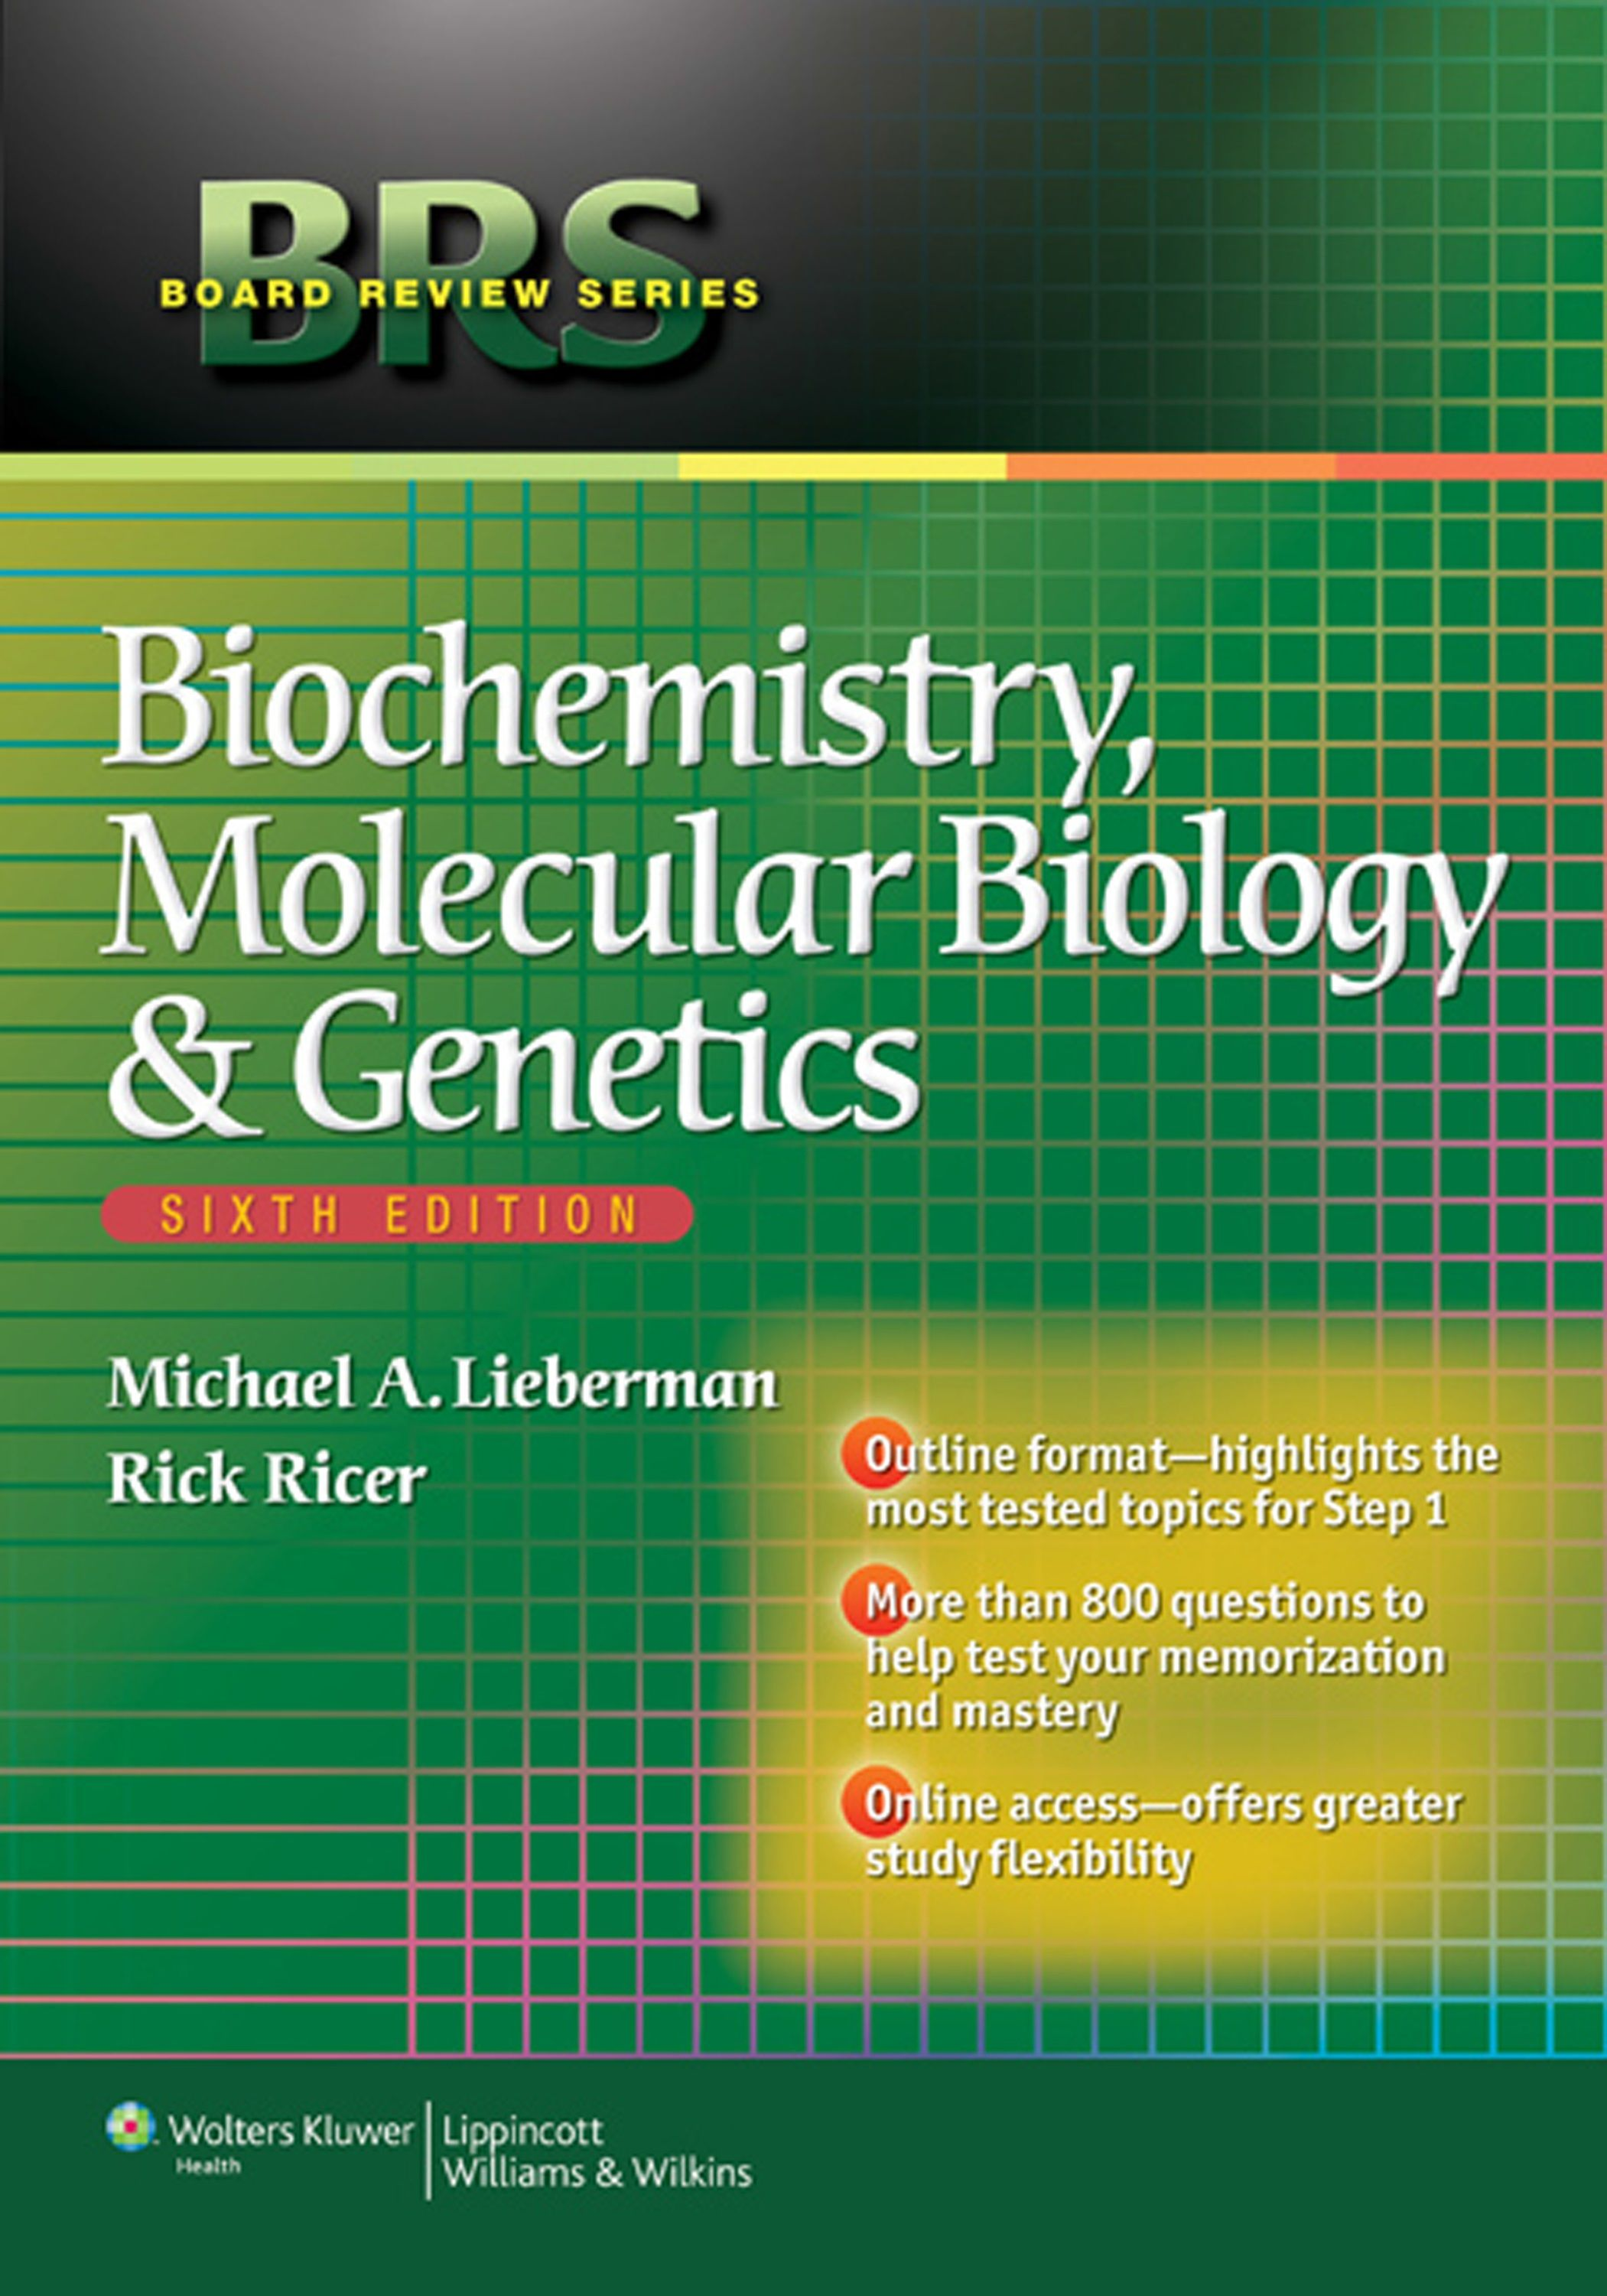 Brs Biochemistry Molecular Biology And Genetics 6th Edition Pdf